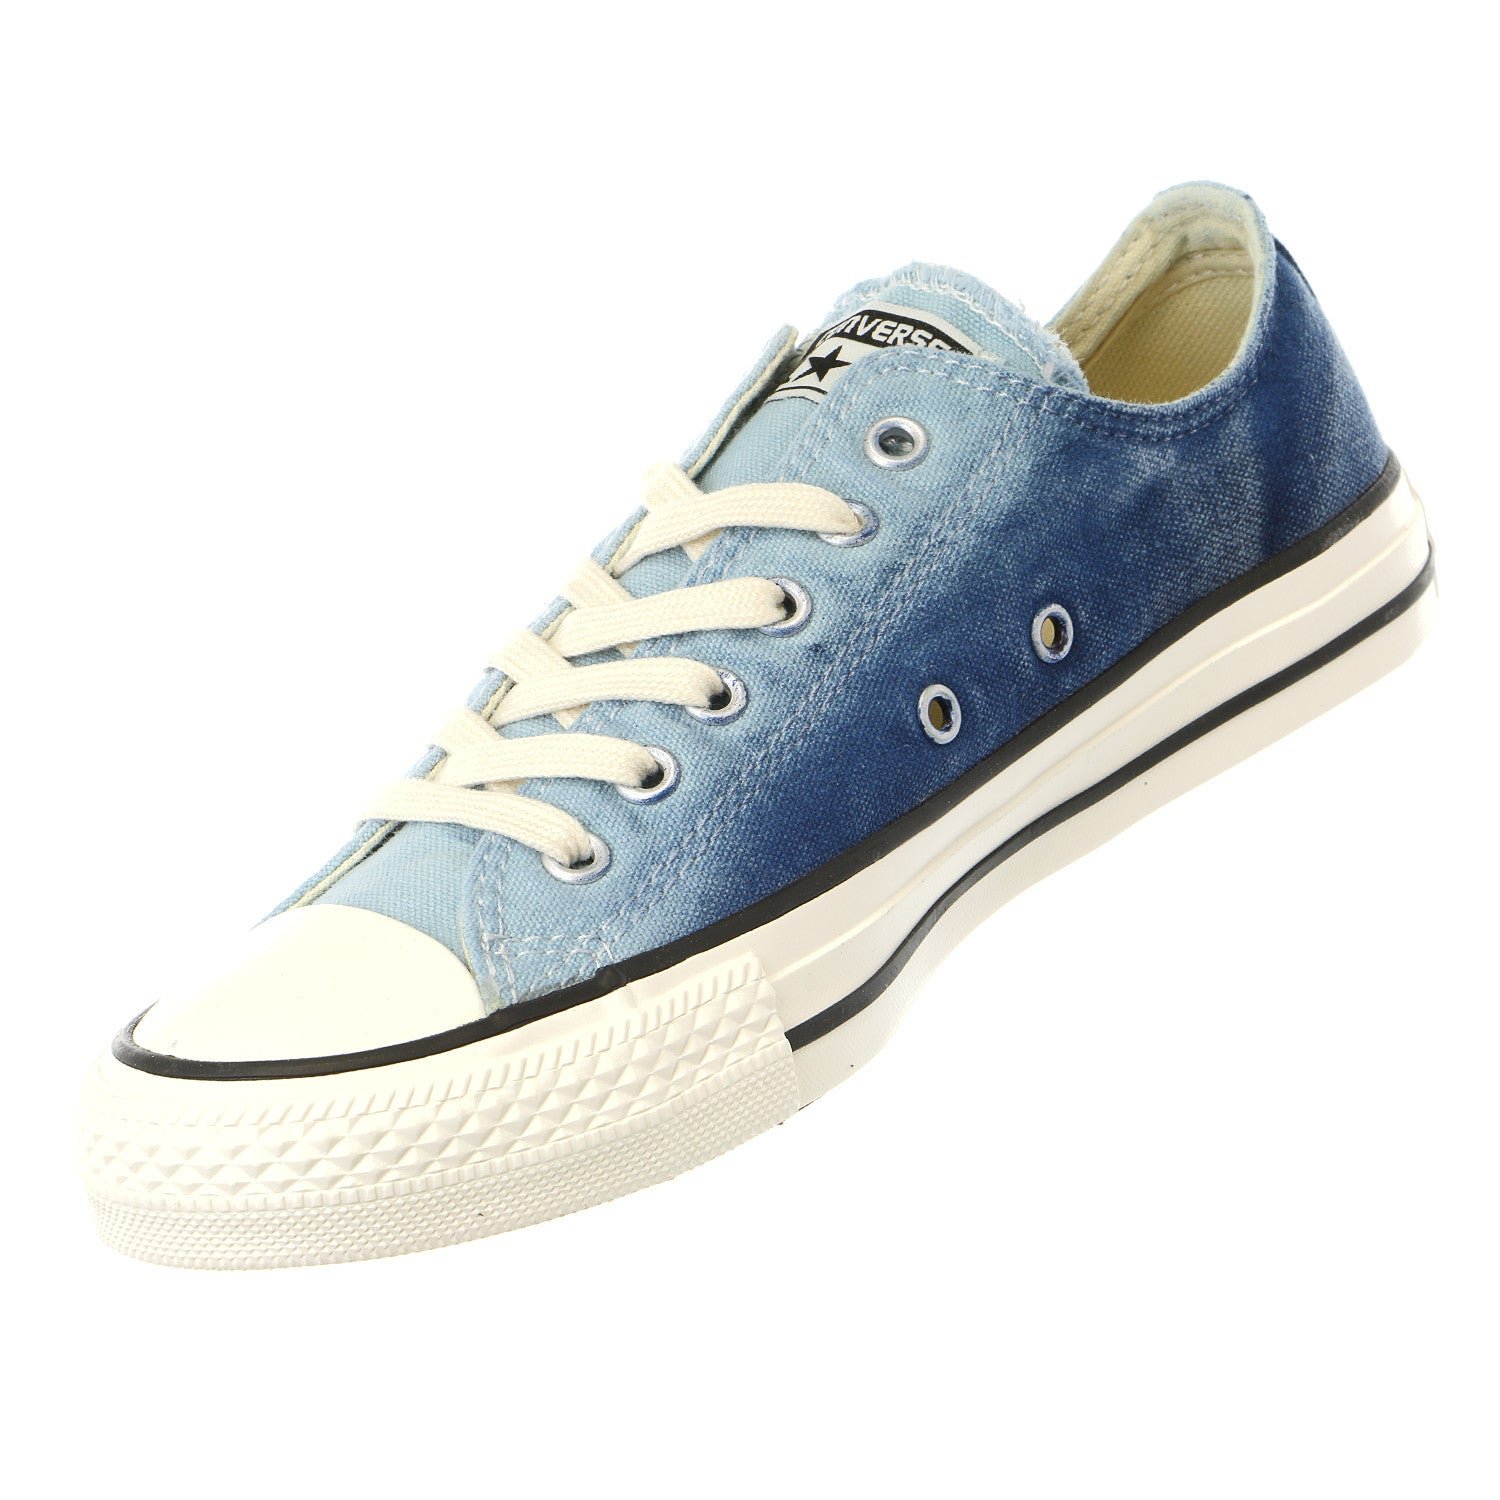 Converse Mens Chuck Taylor All Star Sunset Ox Fashion Sneaker Shoe ... c66788c31